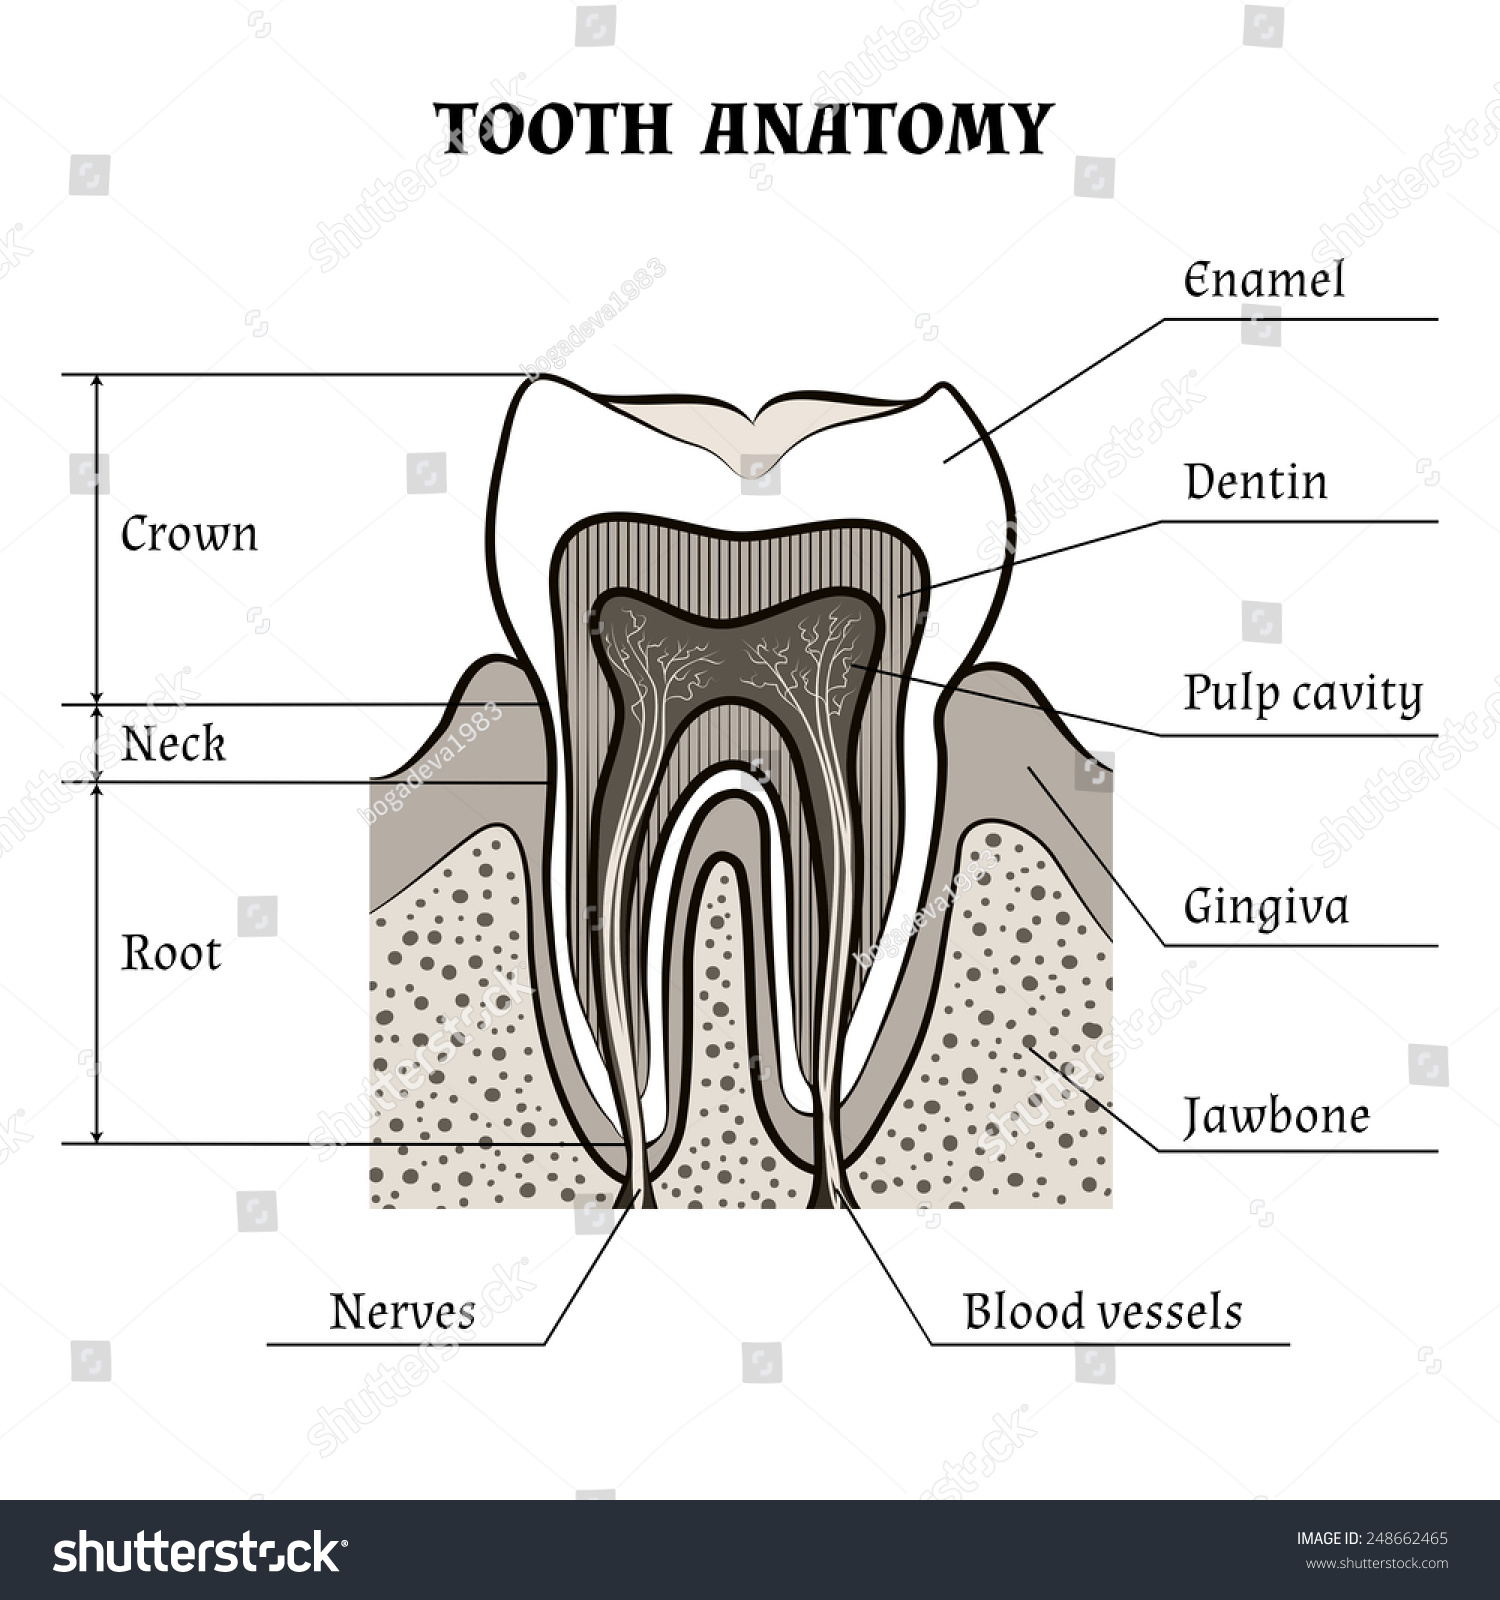 Illustration tooth anatomy drawn retro style stock vector illustration of tooth anatomy drawn in retro style isolated on white background biocorpaavc Image collections